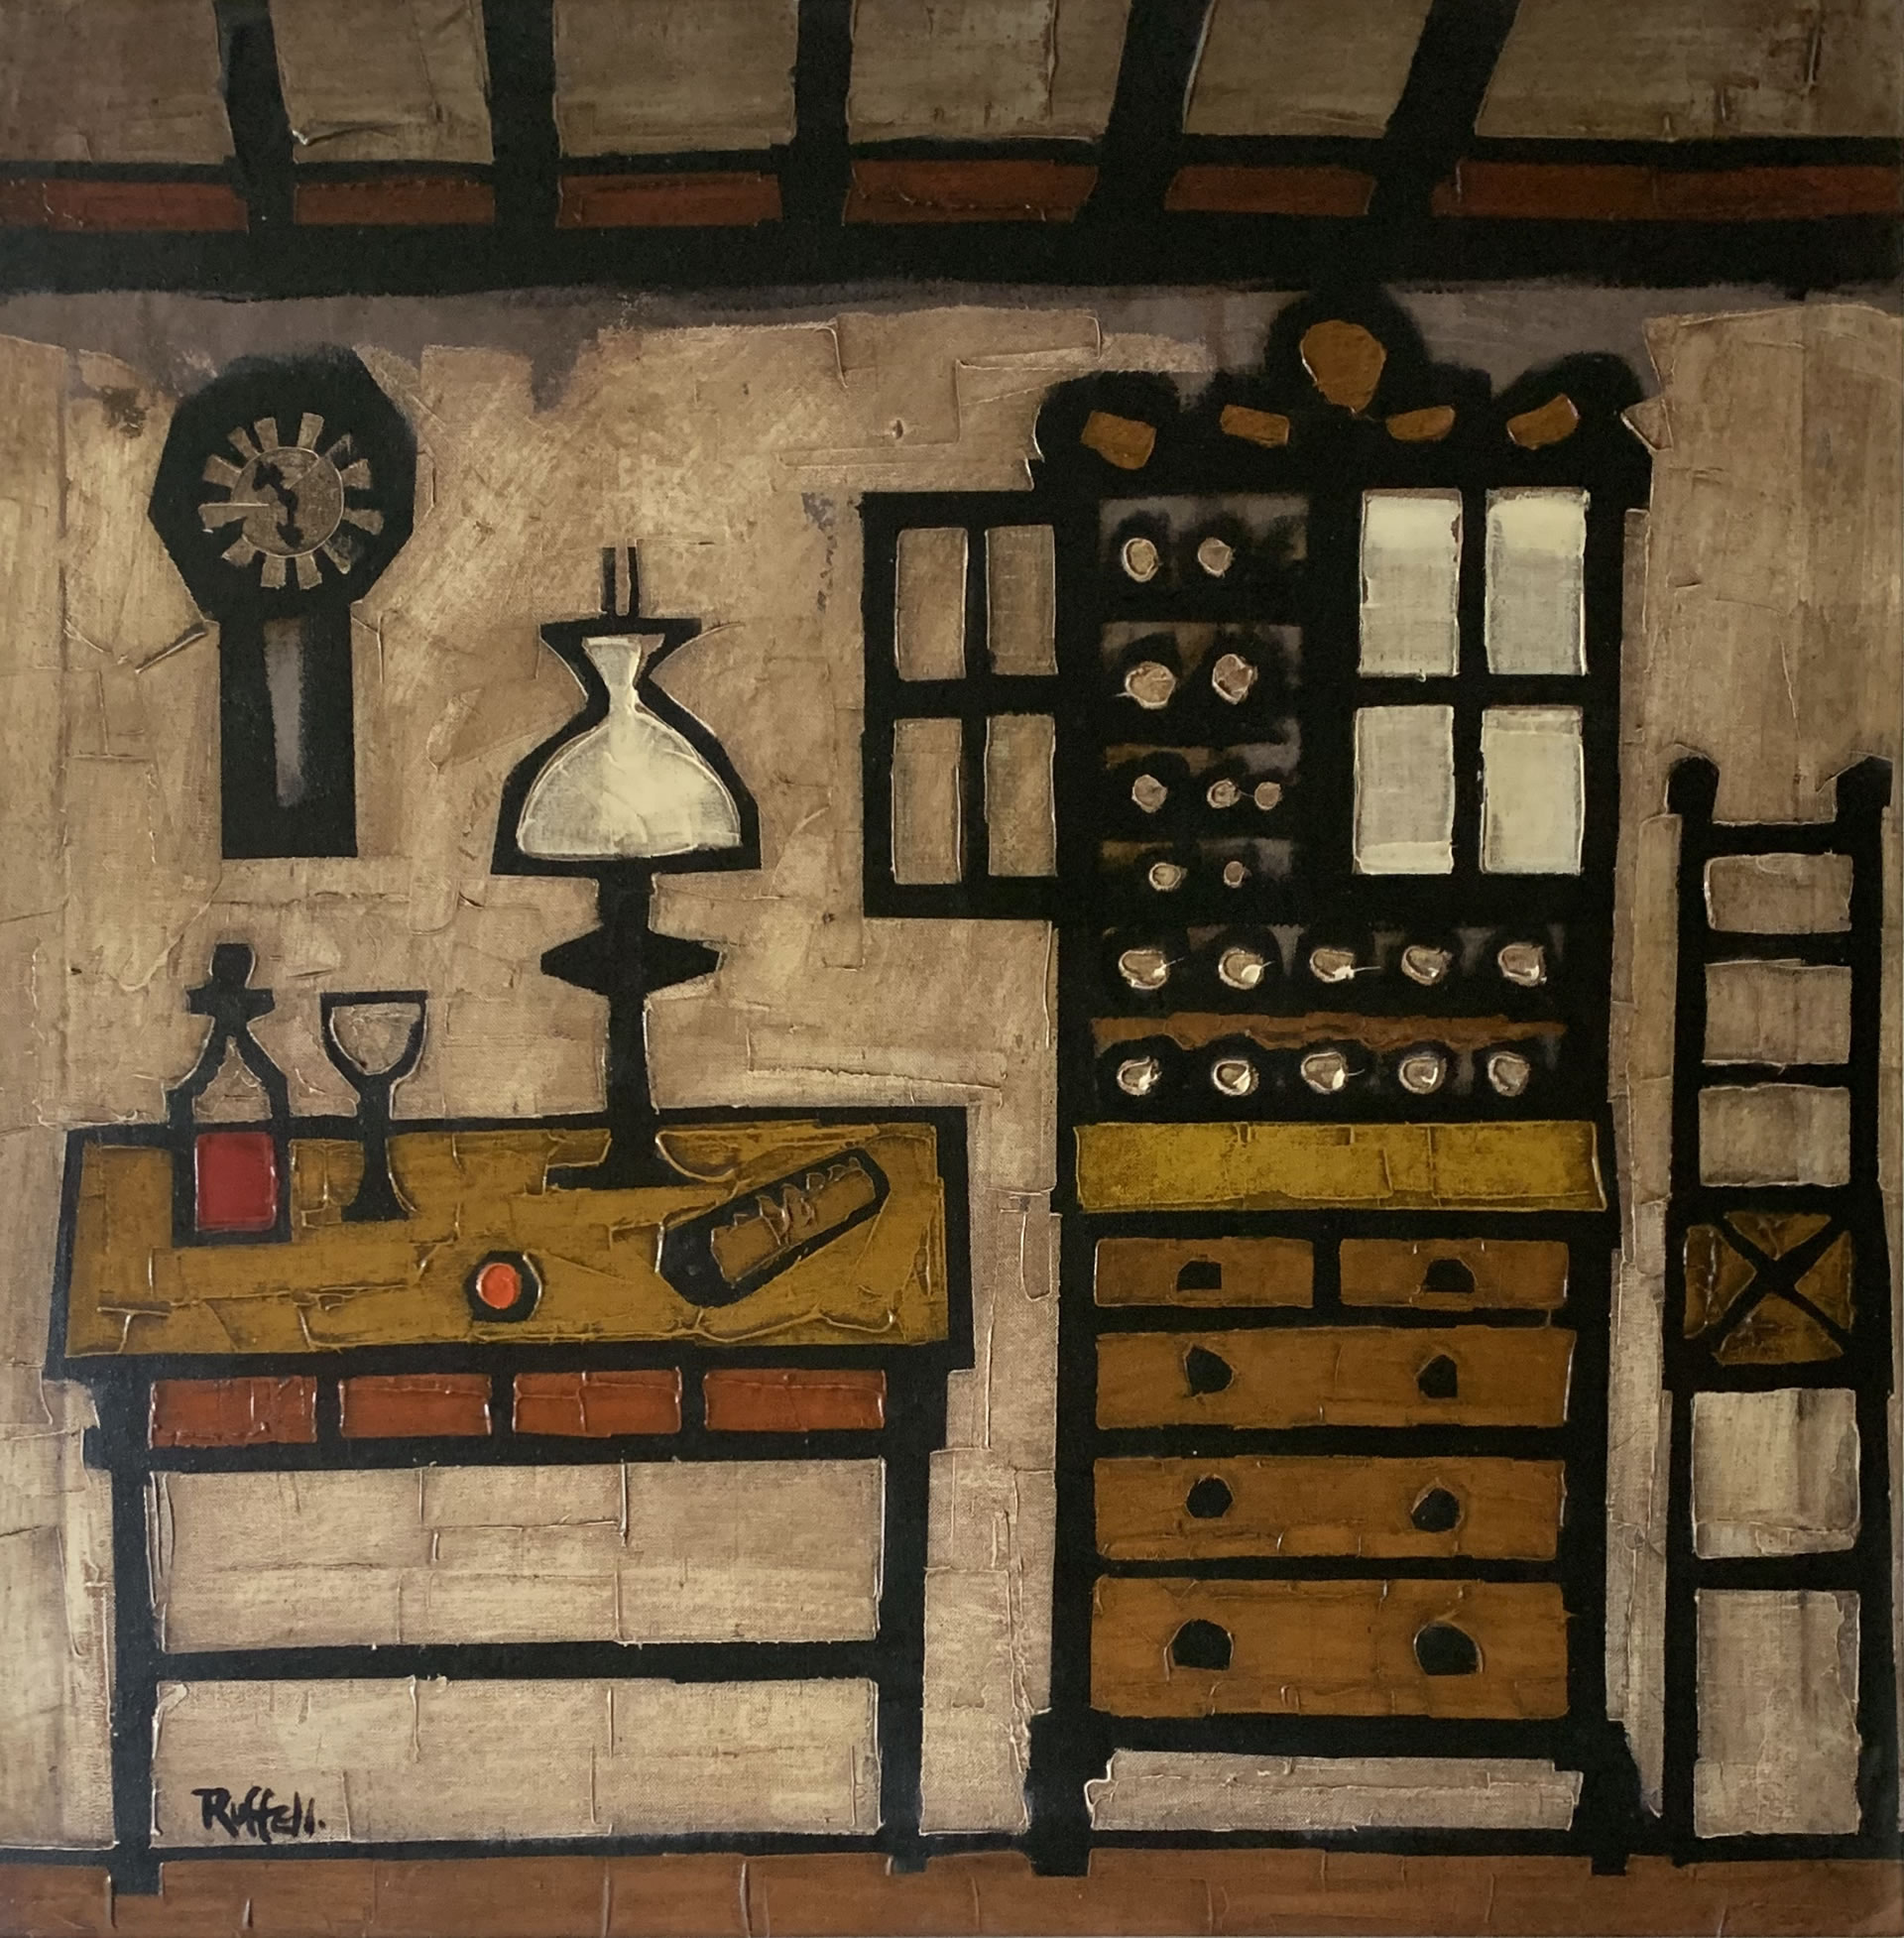 Kitchen Still Life, painting by Colin Ruffell